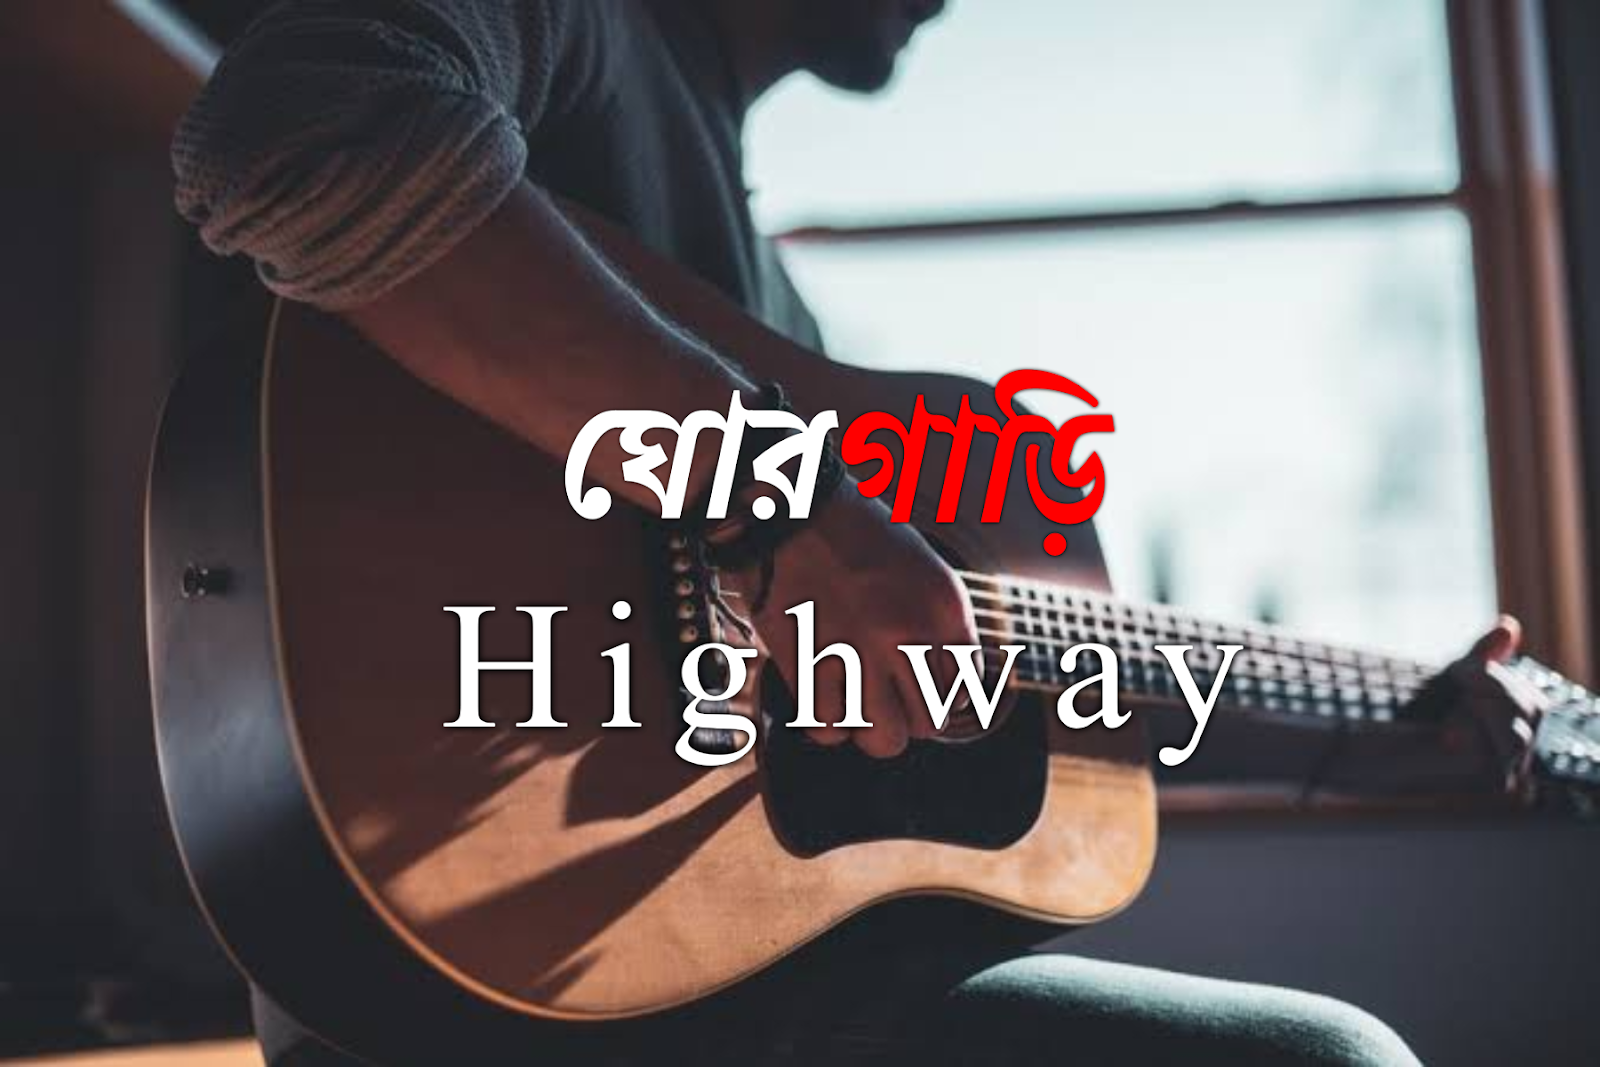 Ghor Gari-Highway mp3 song Download with Lyrics